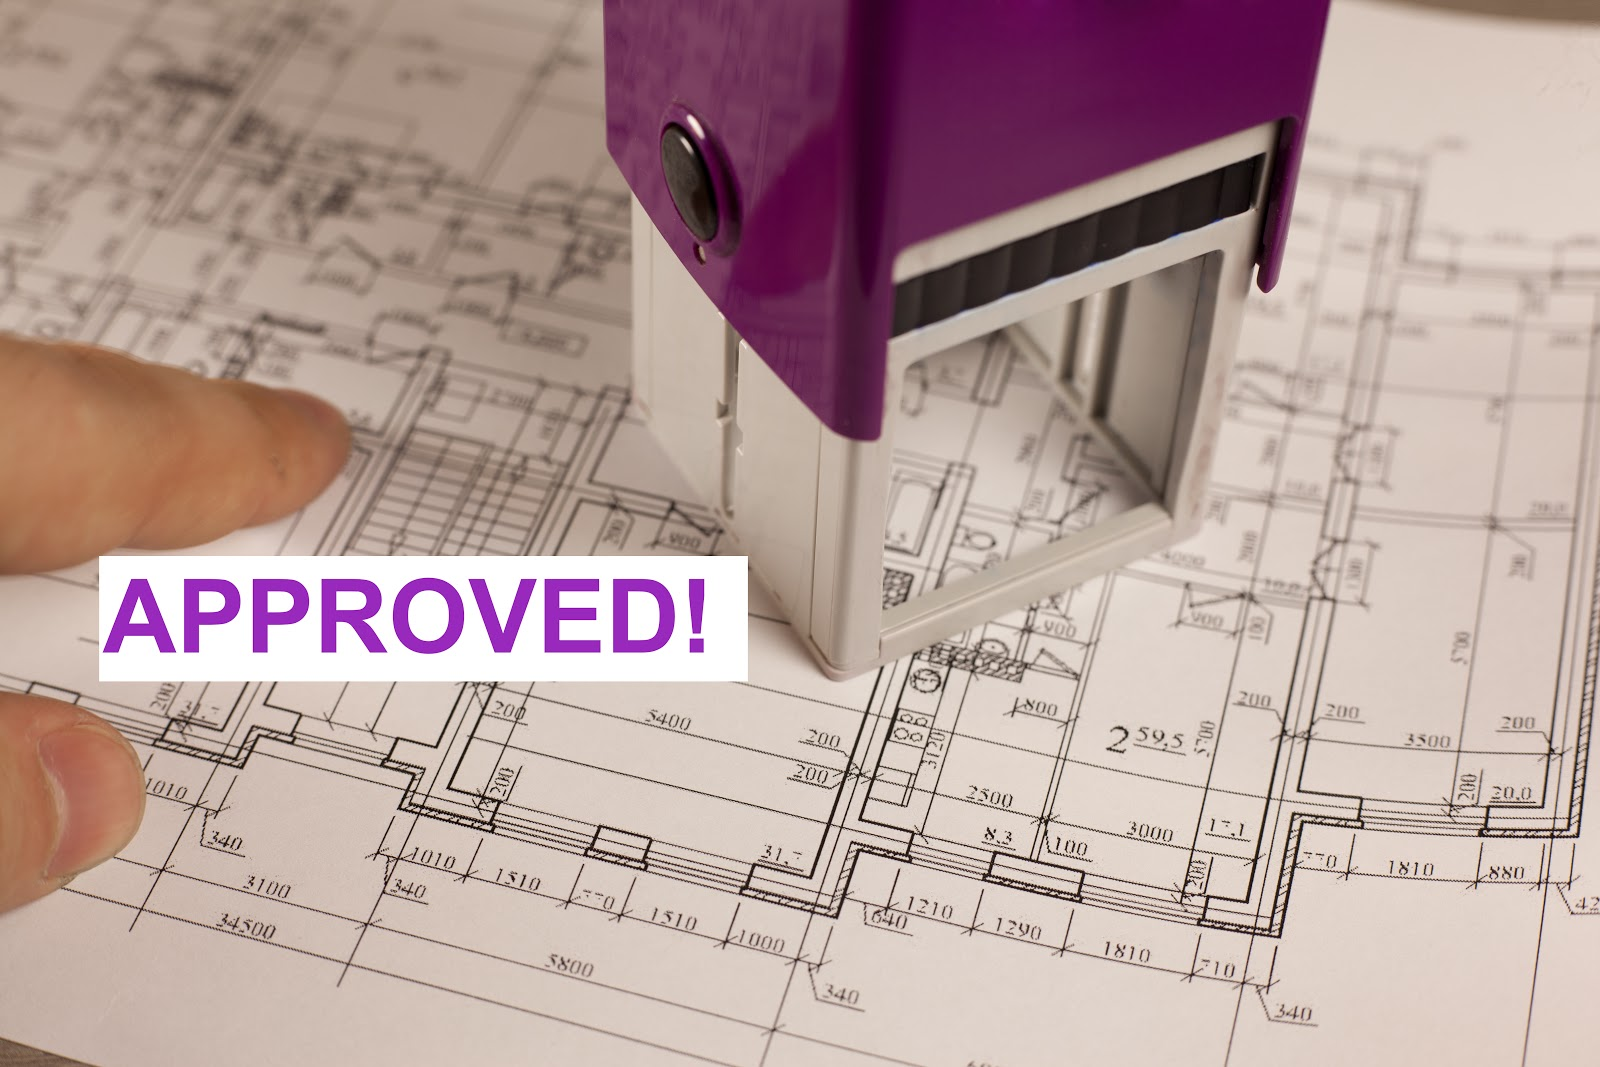 building permit approval